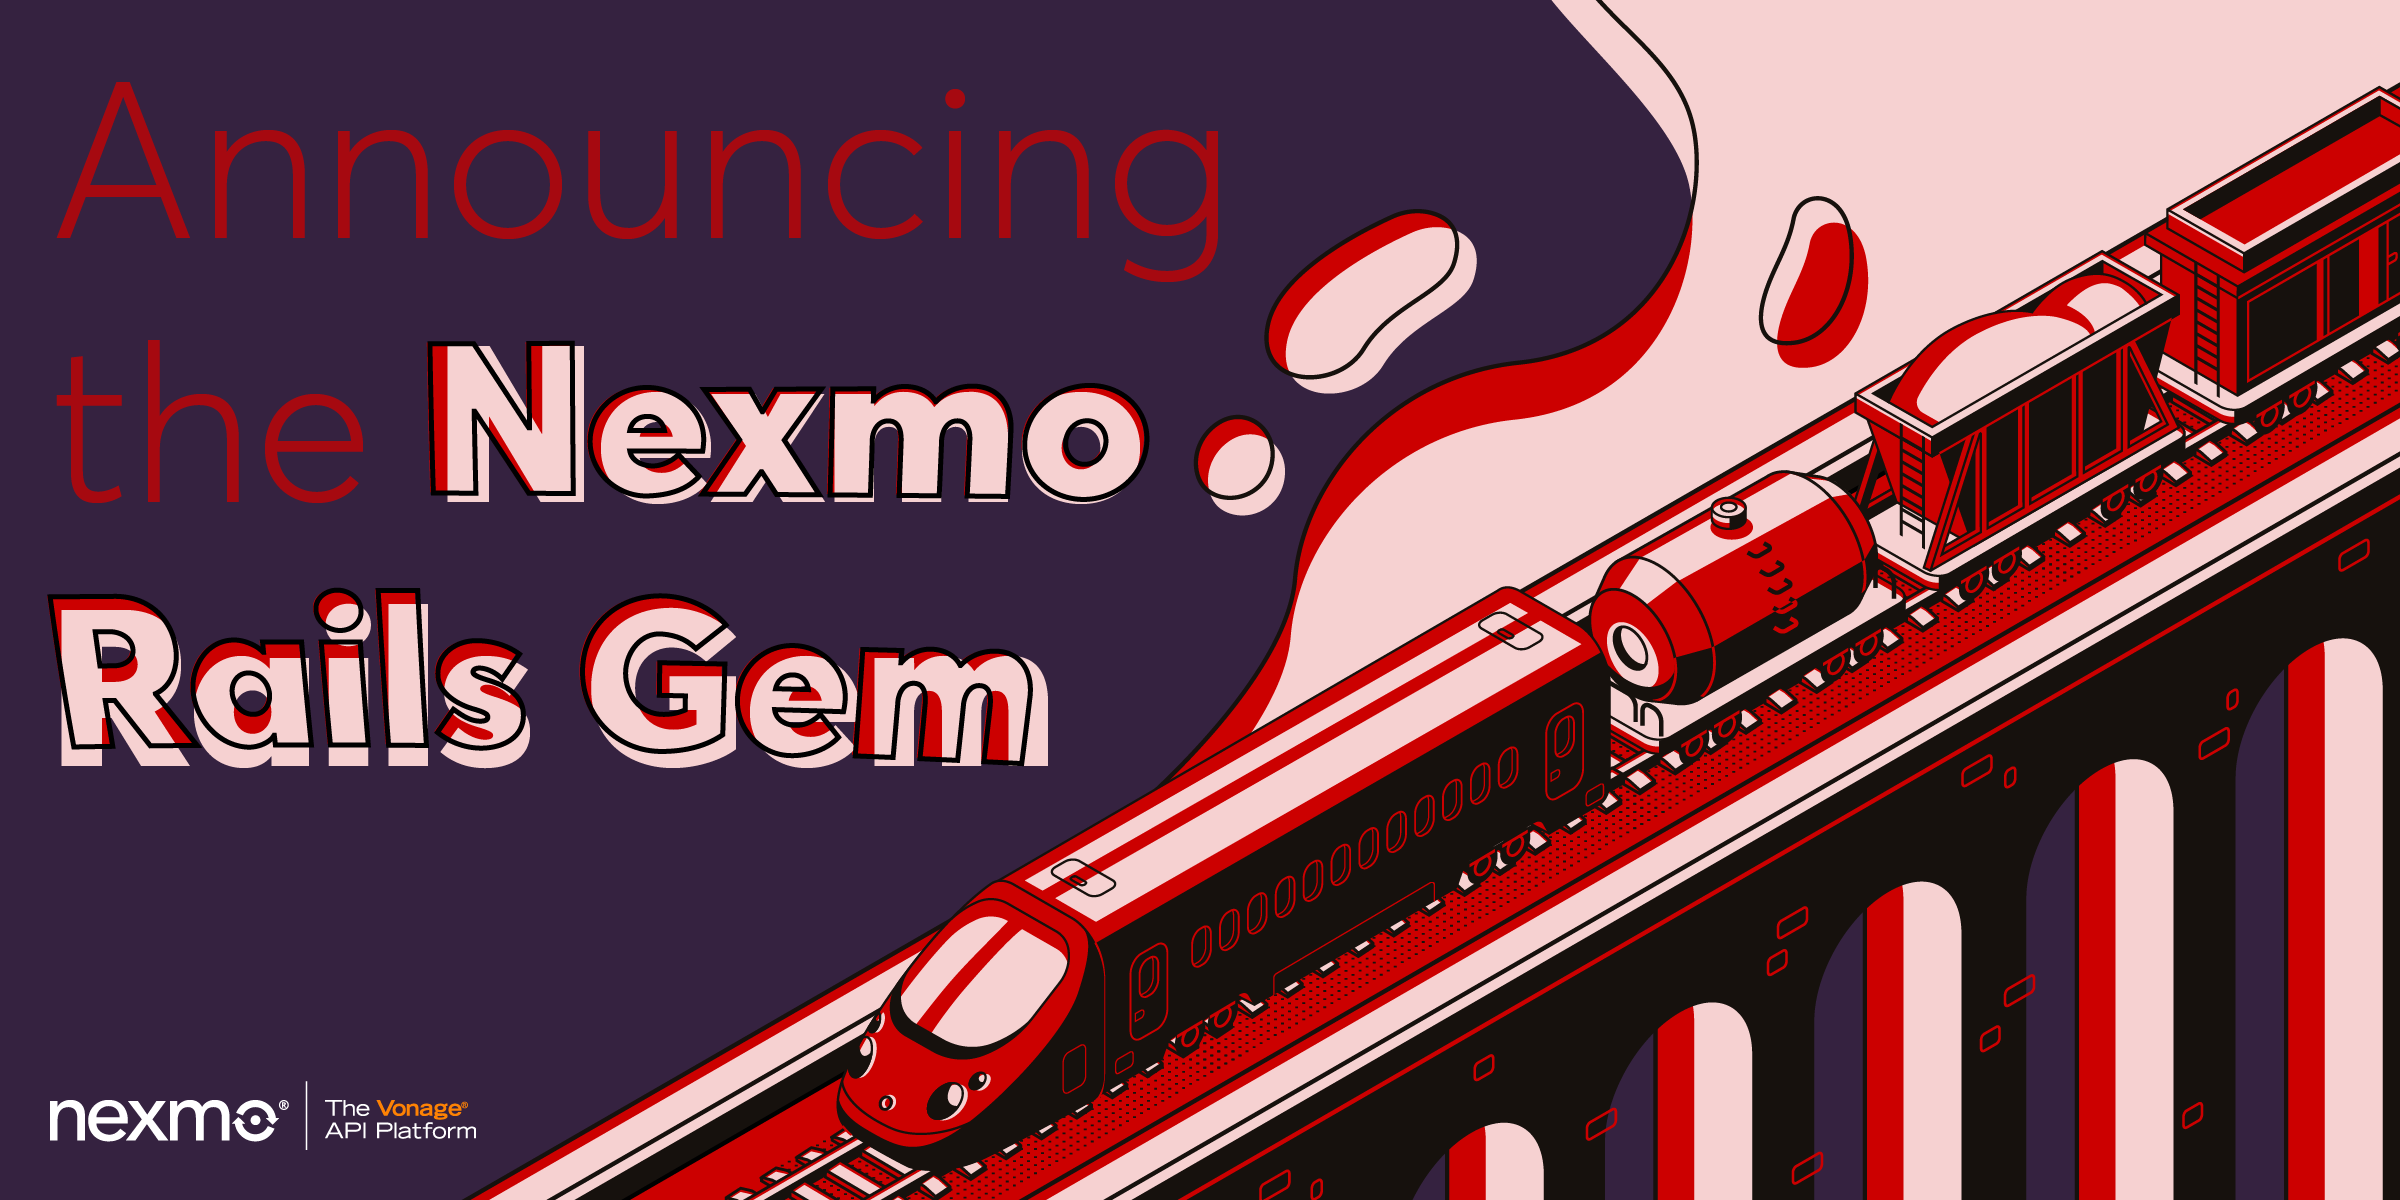 Announcing the Nexmo Rails Gem